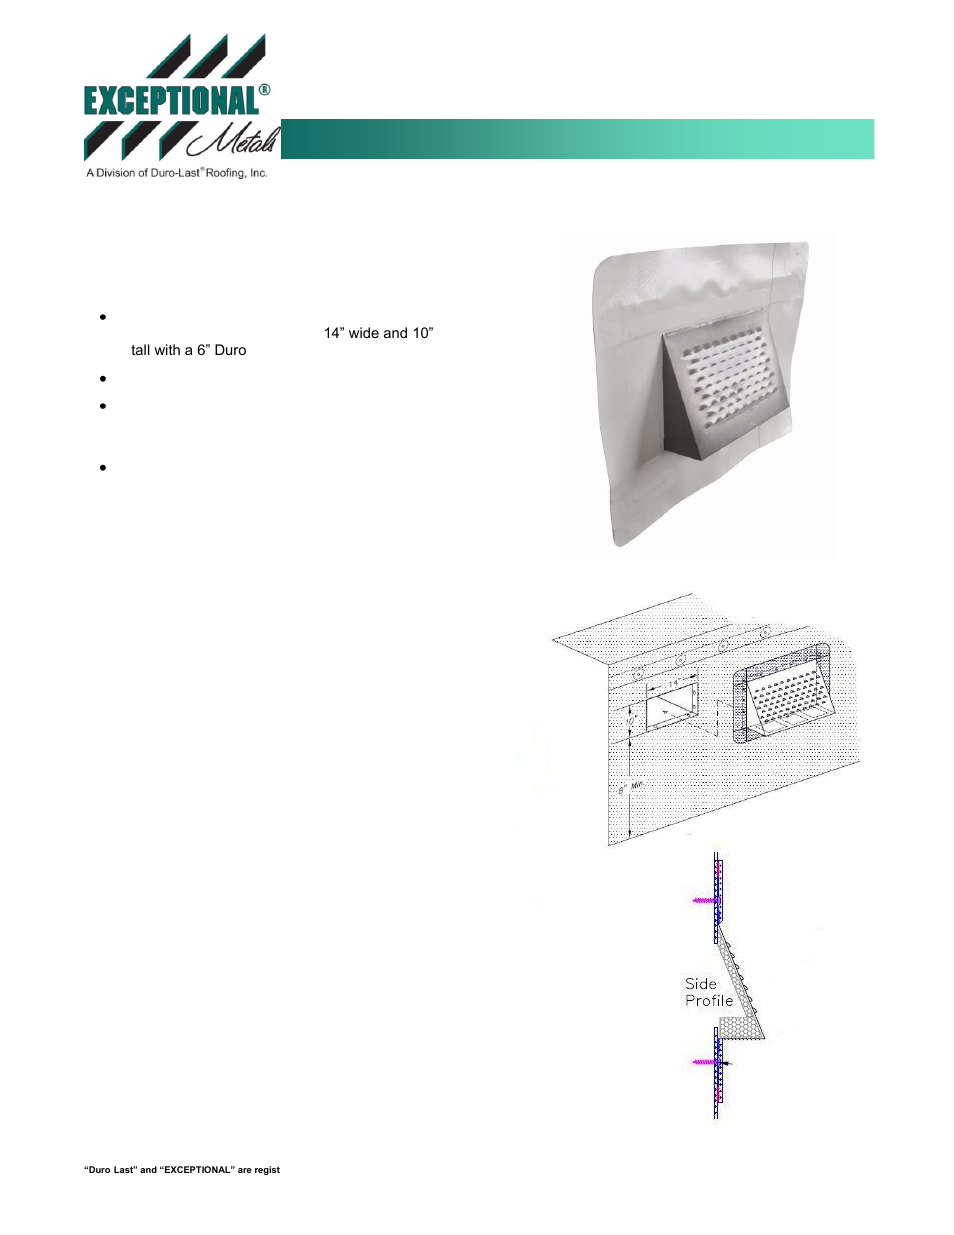 Duro Last Parapet Wall Vent User Manual 1 Page